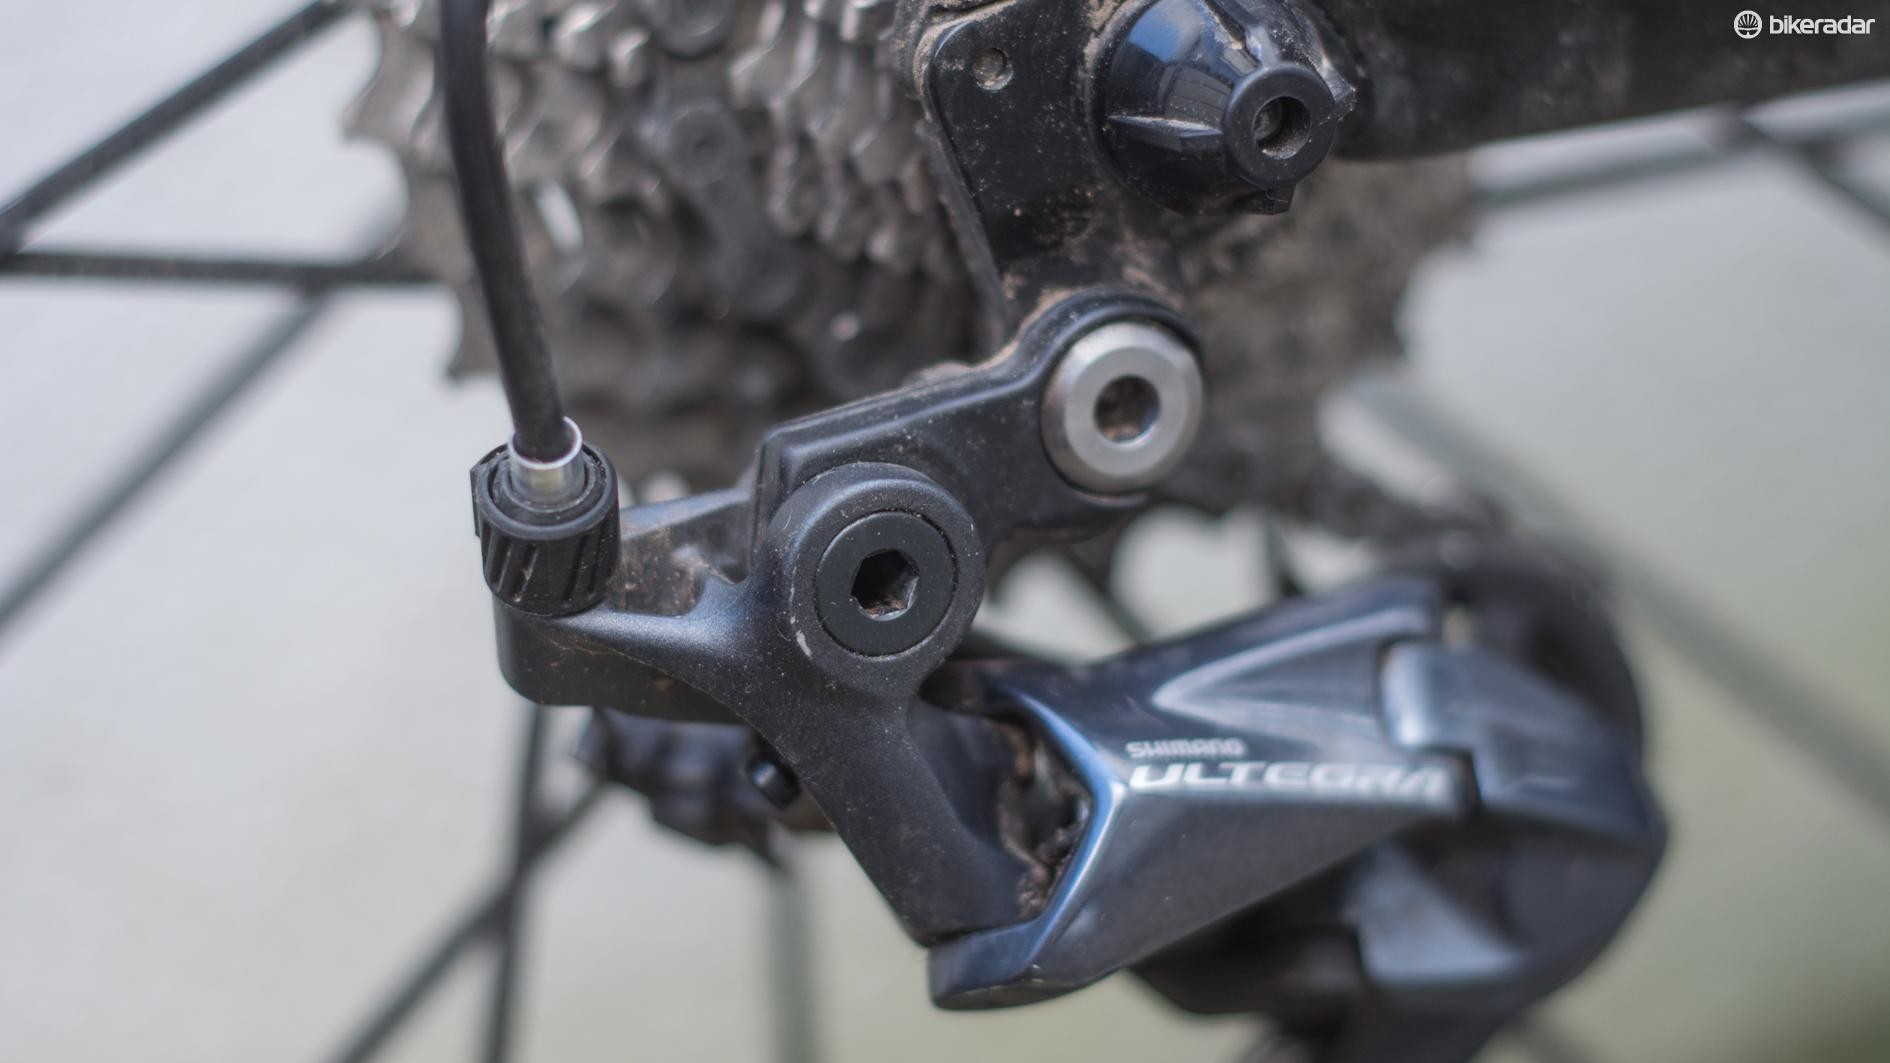 Will we see DRD mech hangers on road bikes of the future?